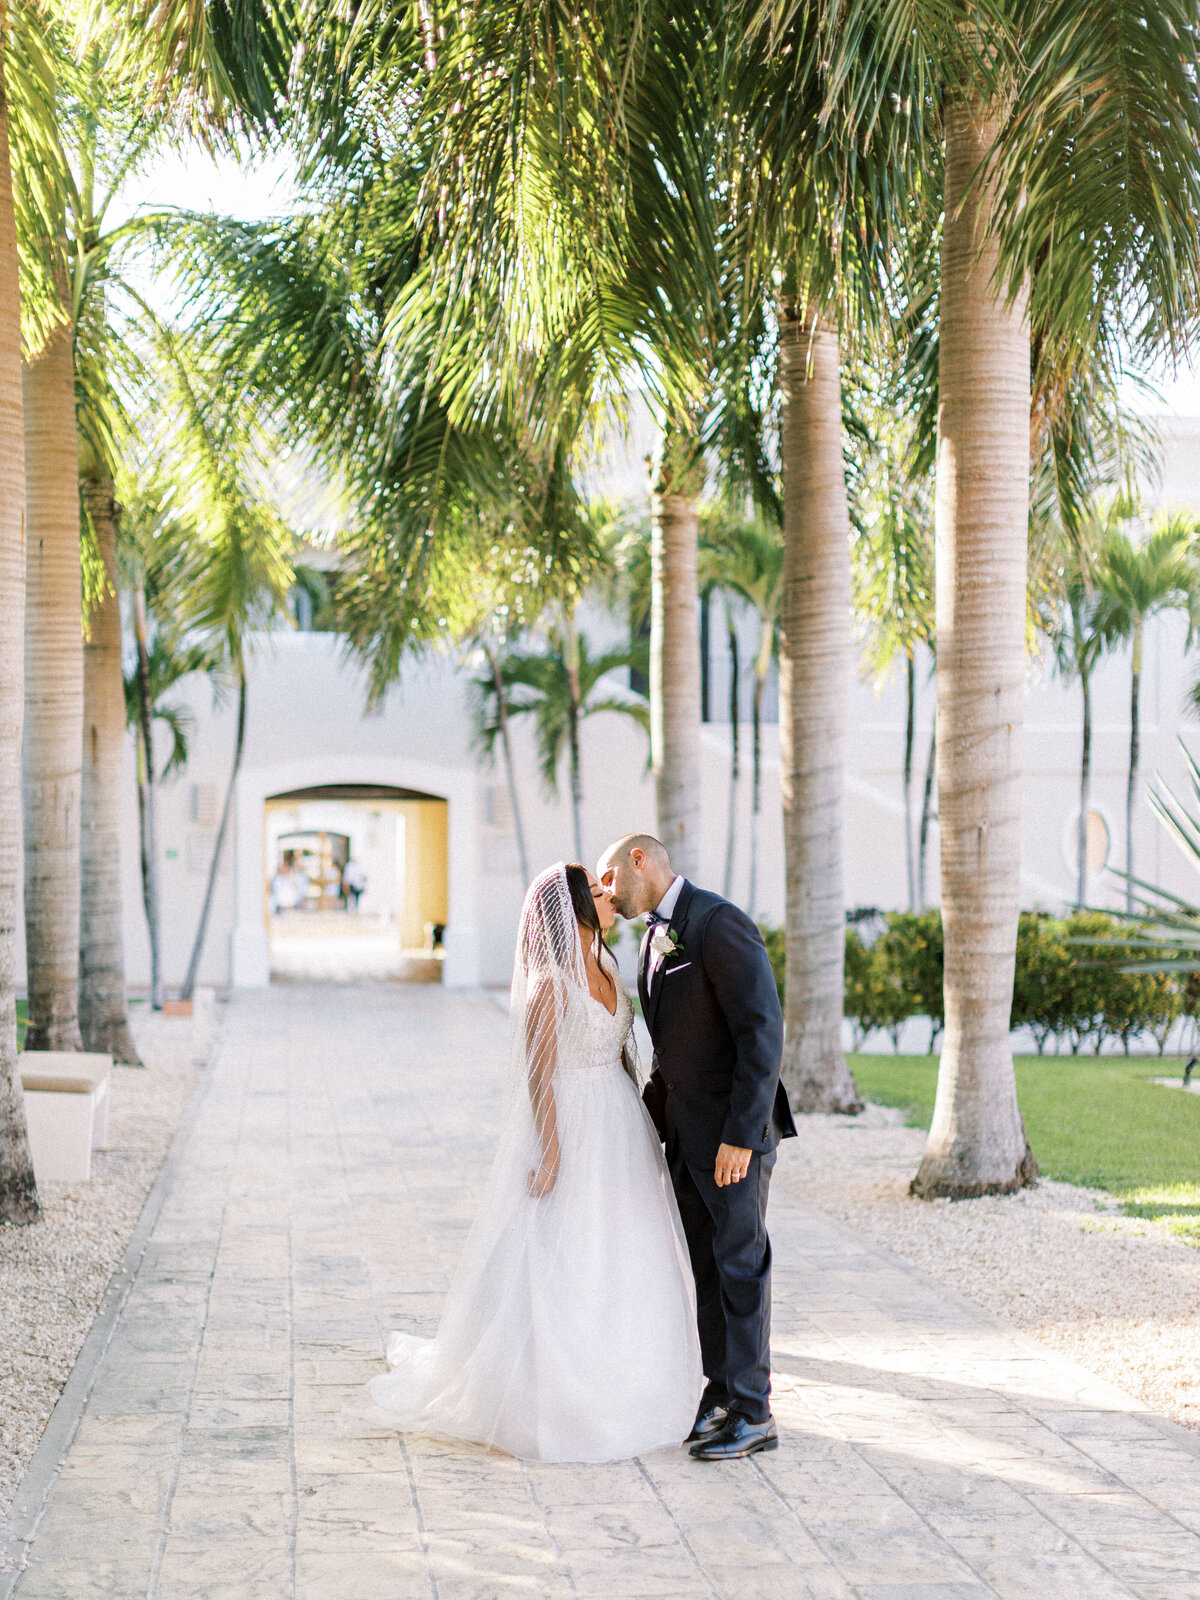 Tiffaney Childs Photography-Florida Wedding Photographer-Stephanie + Juan-Dreams Tulum Wedding-15